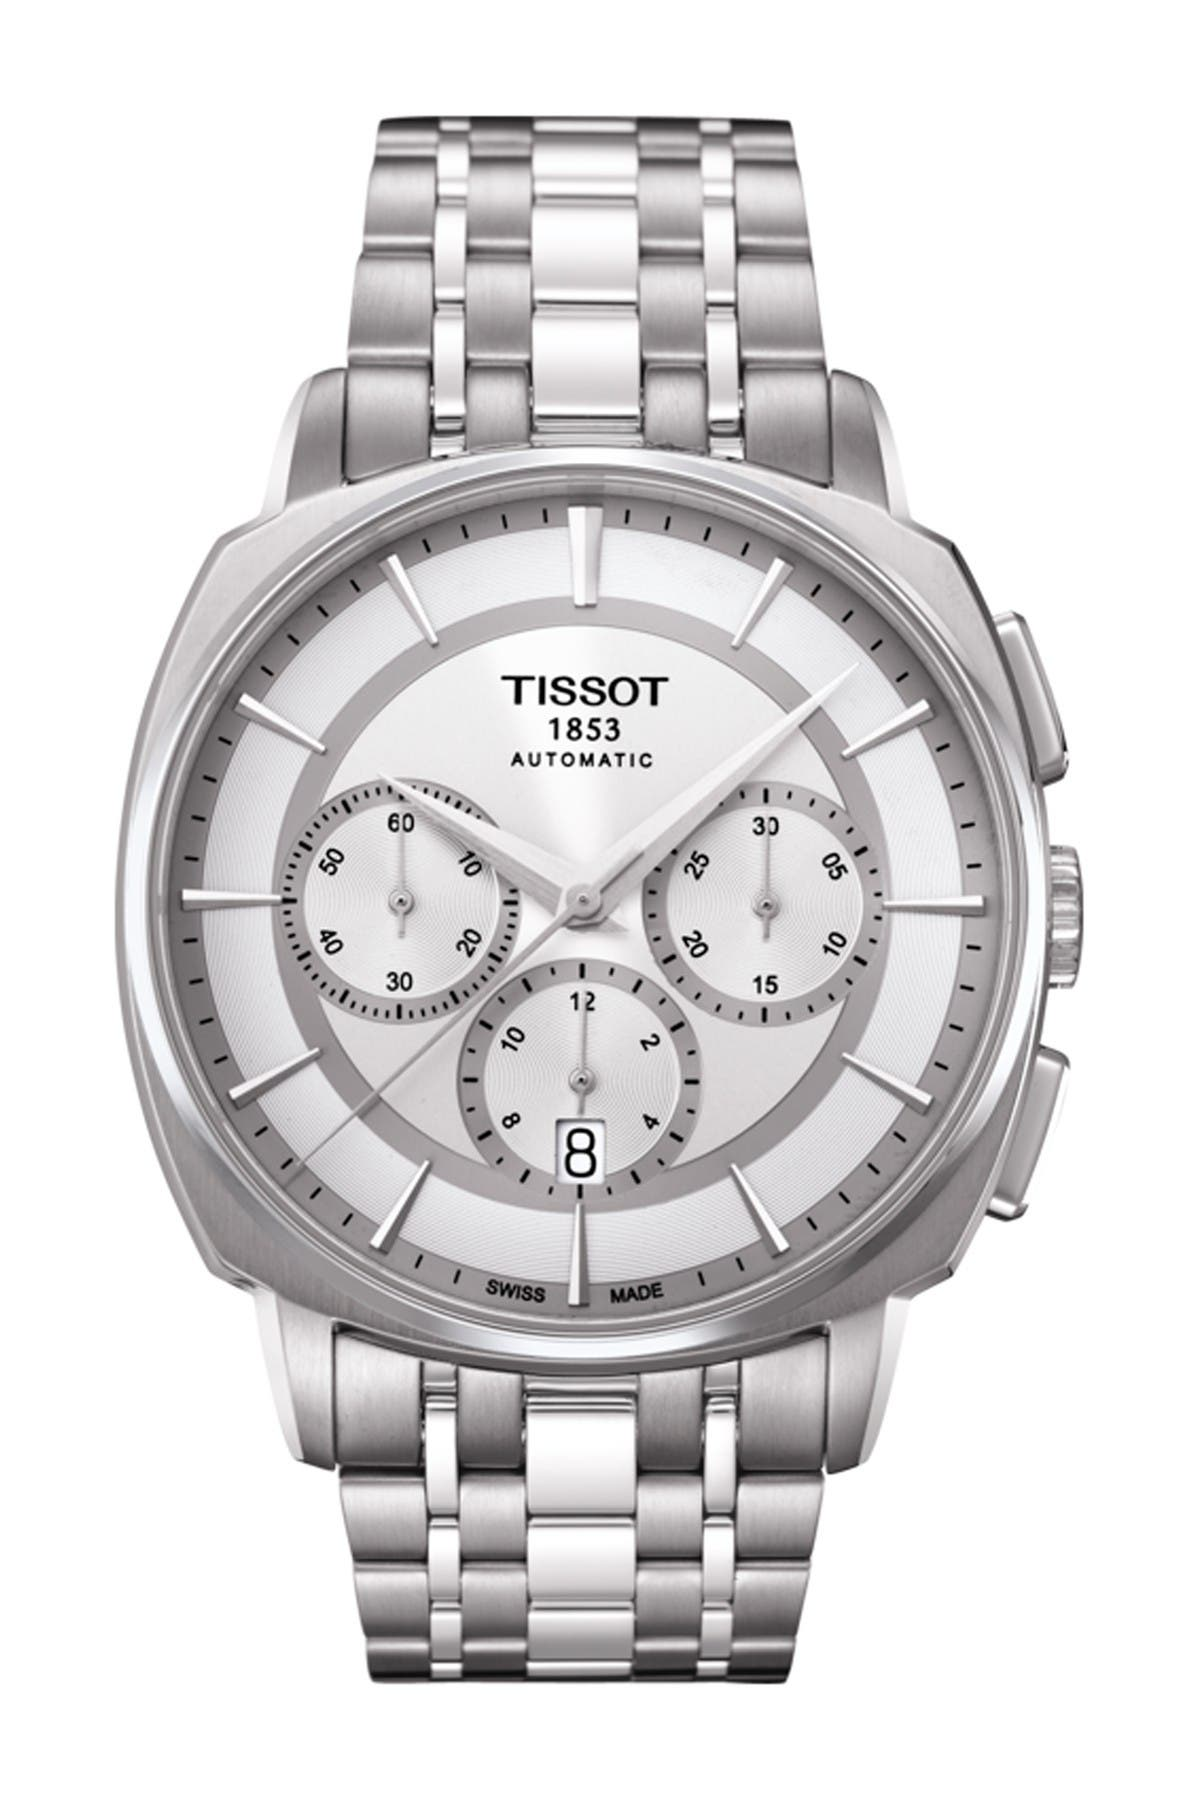 Image of Tissot Men's T-Lord Automatic Chronograph Valjoux Watch, 42.2mm